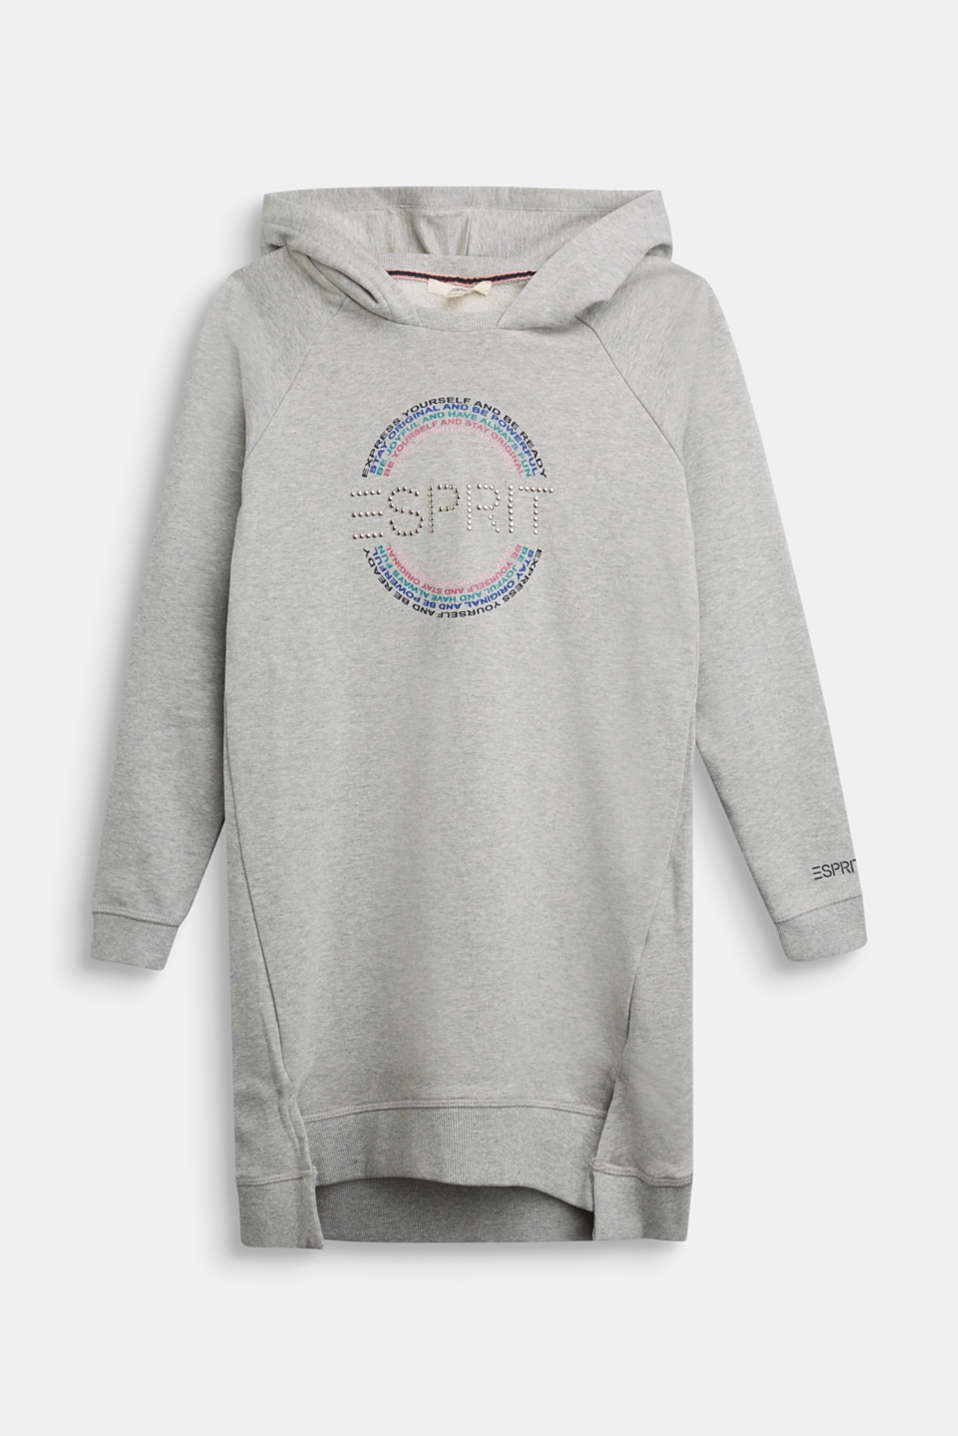 Esprit - Hoodie dress with a print, 100% cotton